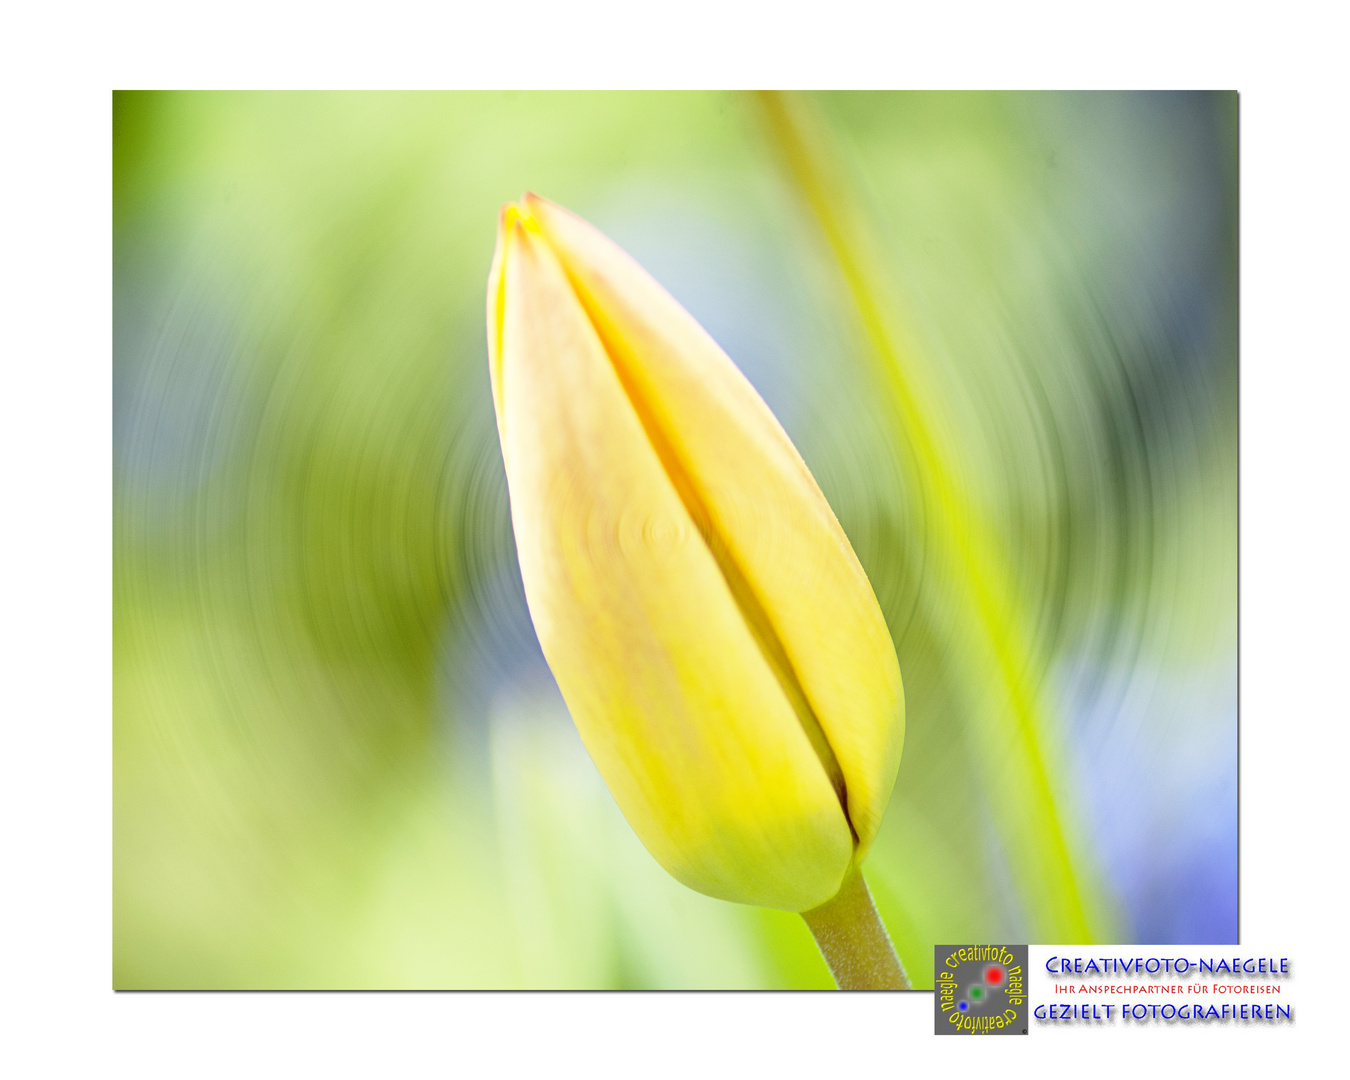 The yellow Tulip